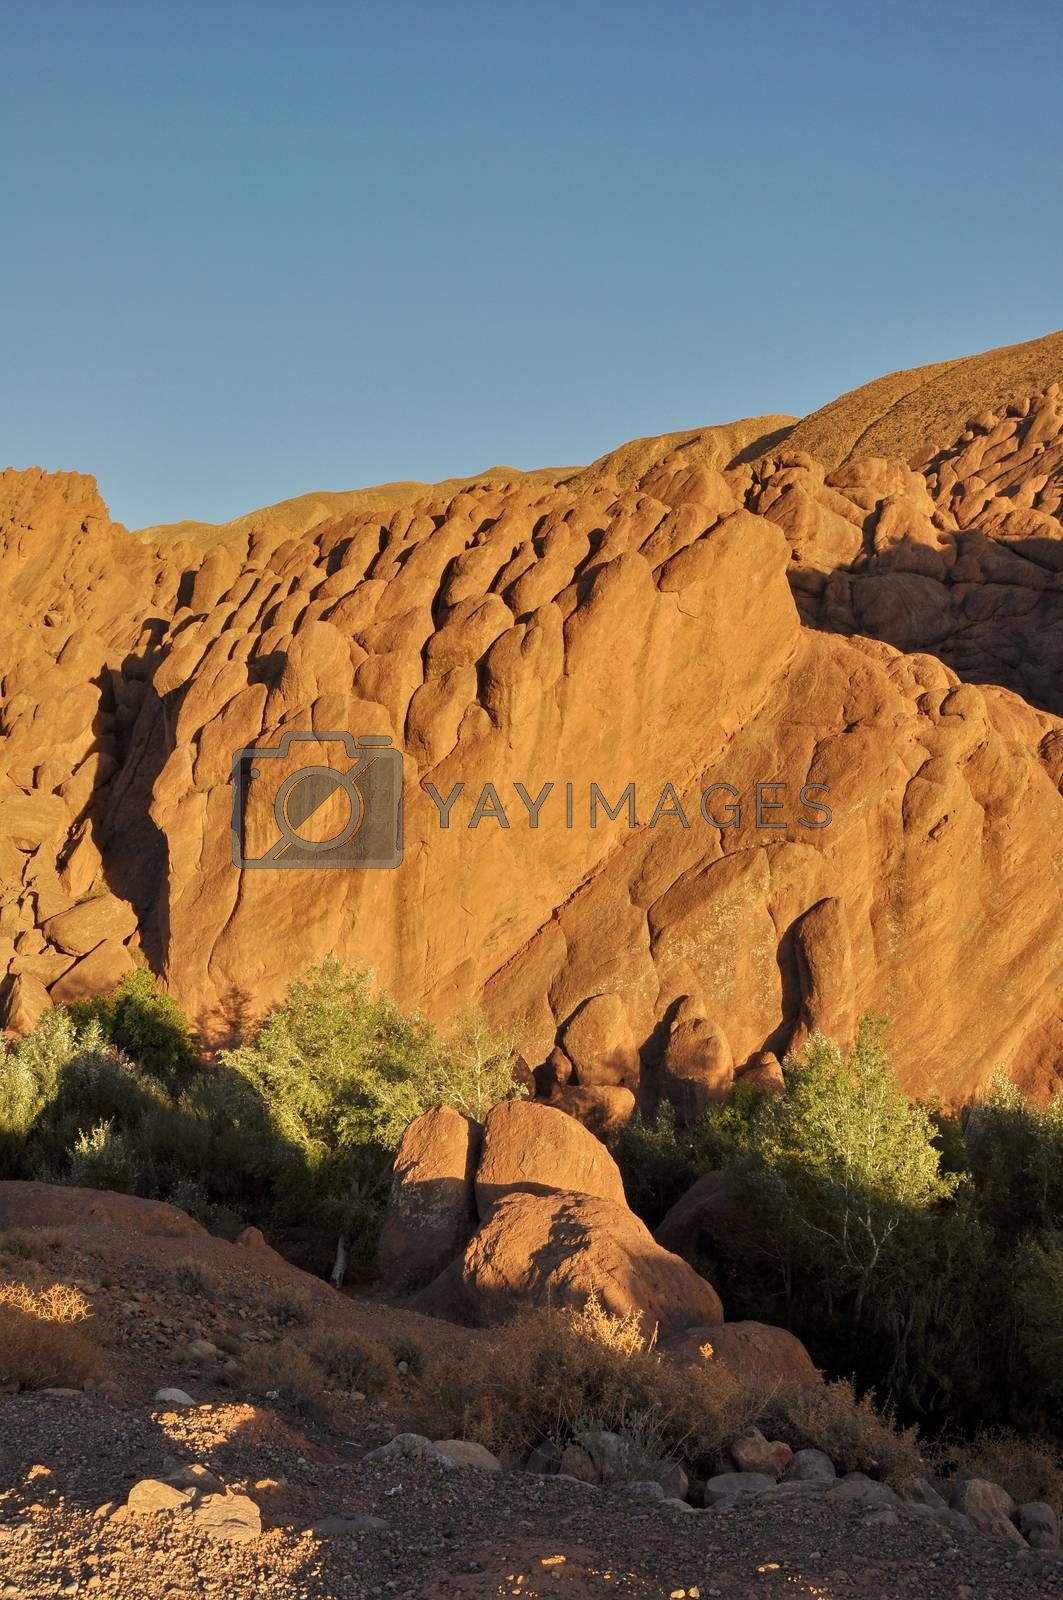 Strange rock formations in Dades Gorge, Morocco, Africa